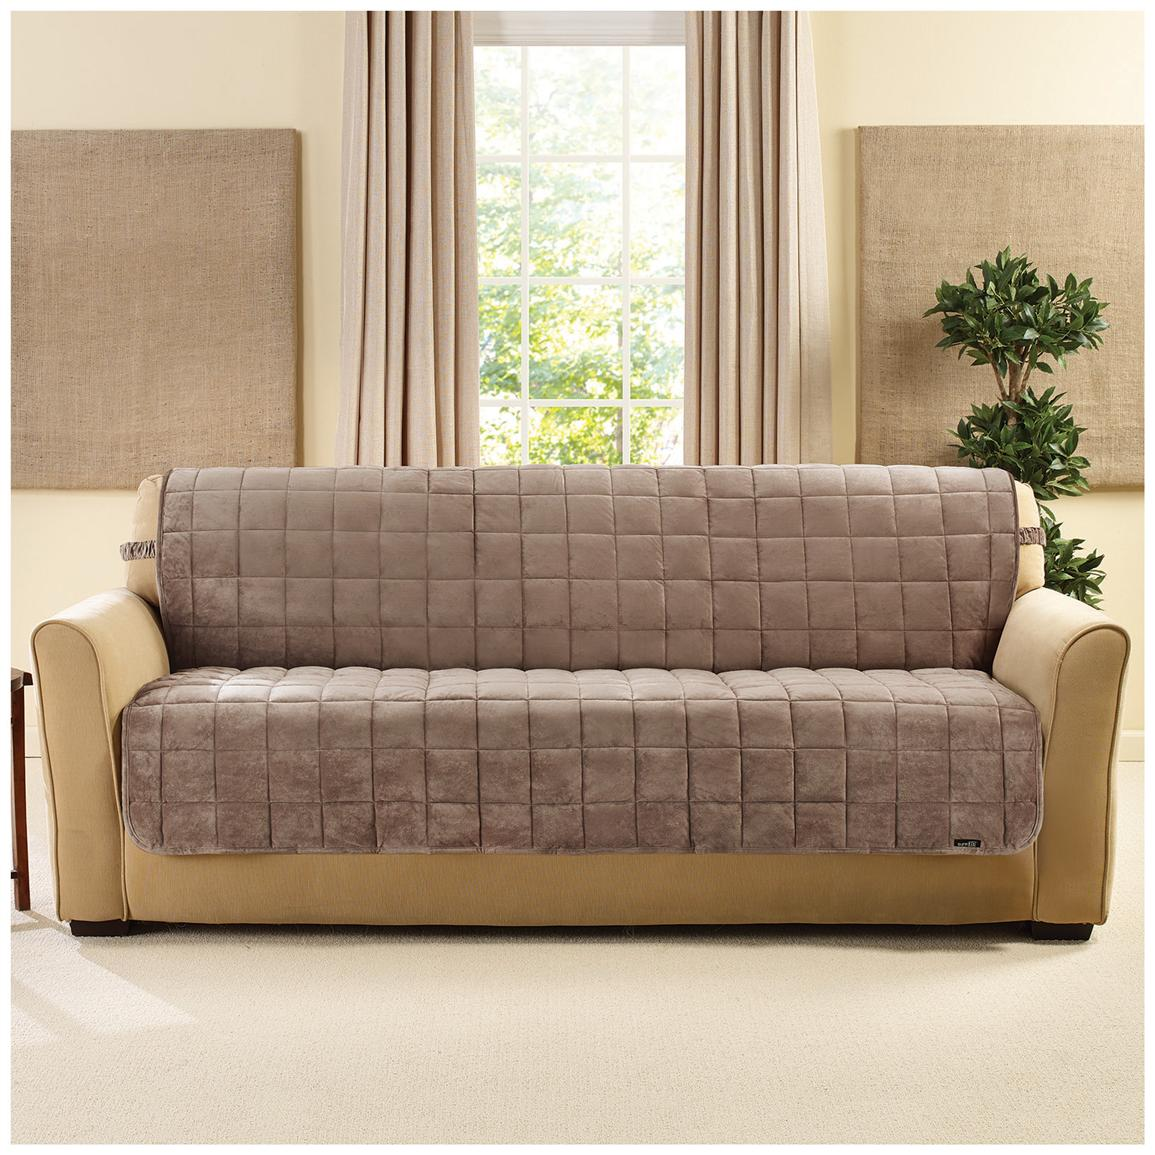 Popular Sure Fit® Quilted Velvet Furniture Friend Armless Sofa Slipcover, Sable armless sofa slipcover